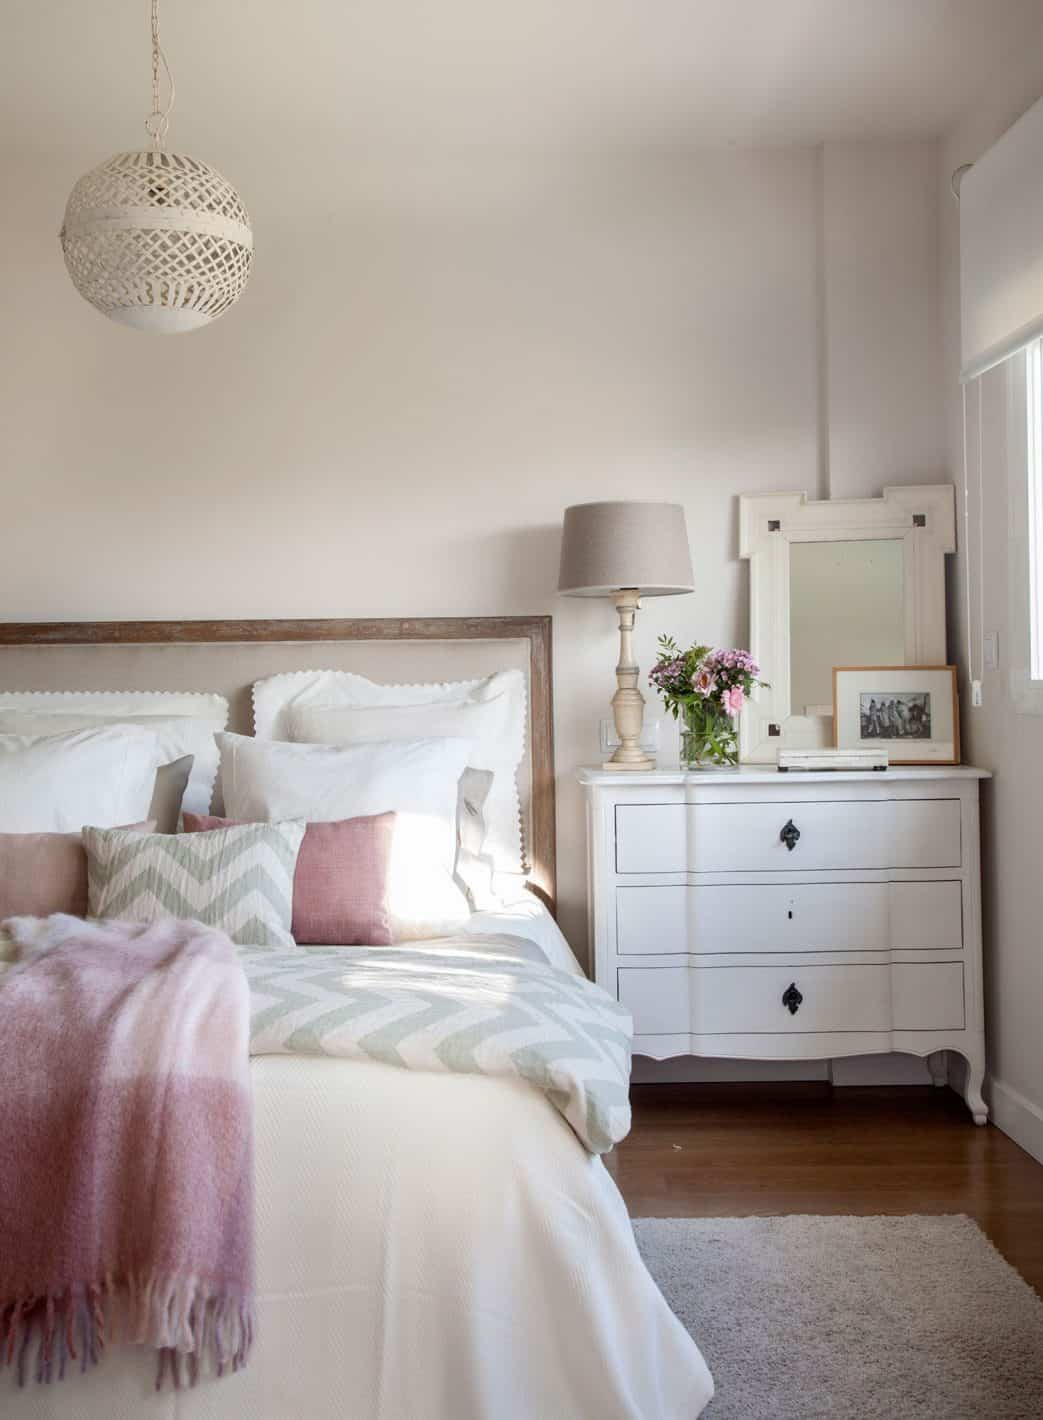 Framed upholstered headboards